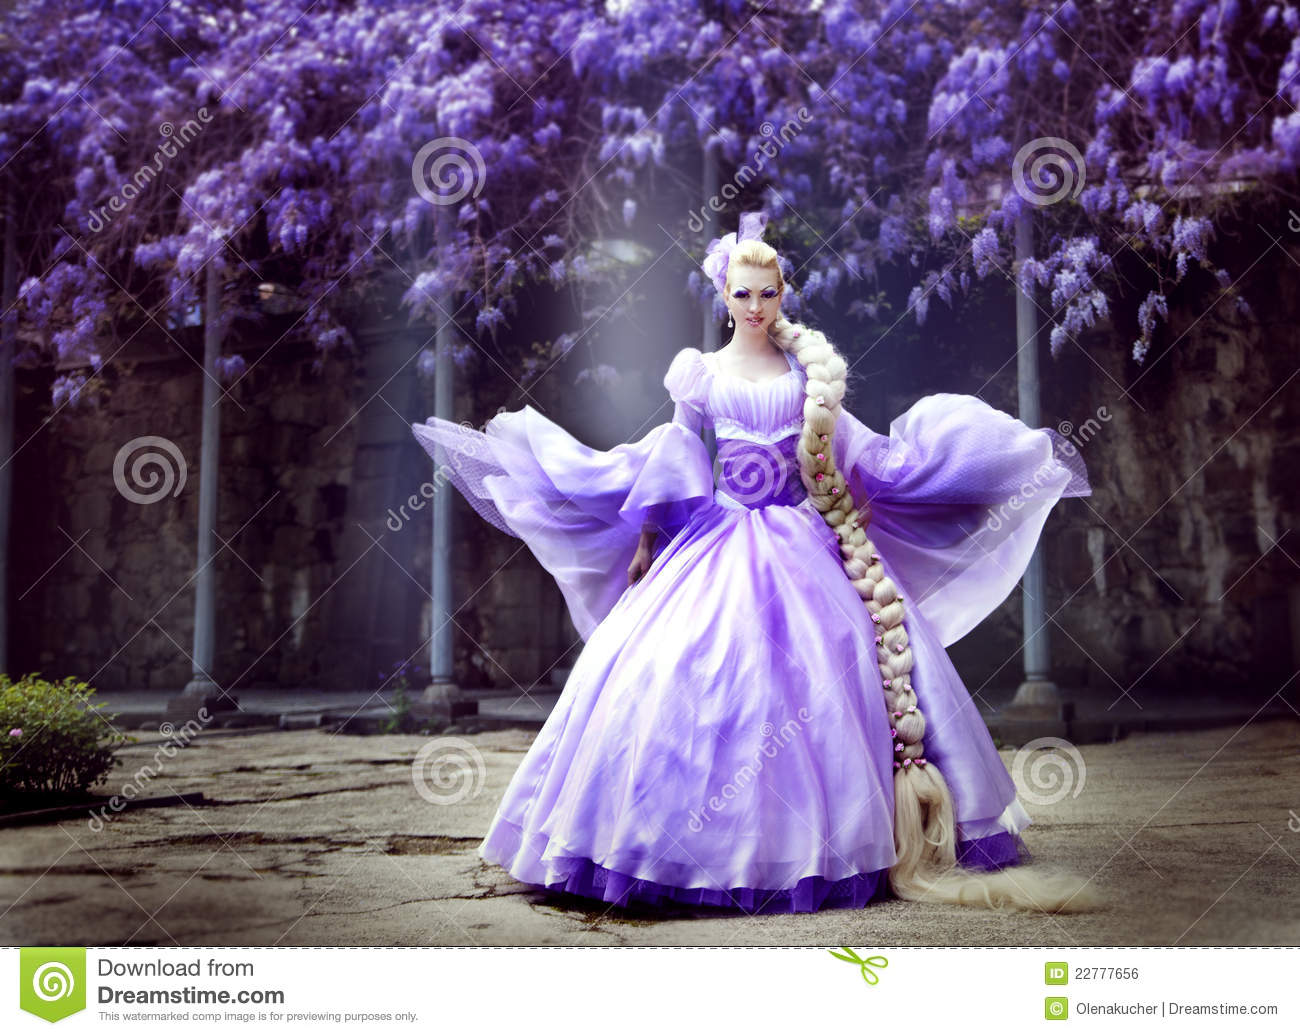 The Beautiful Princess With A Long Plait Royalty Free Stock Image Image 22777656